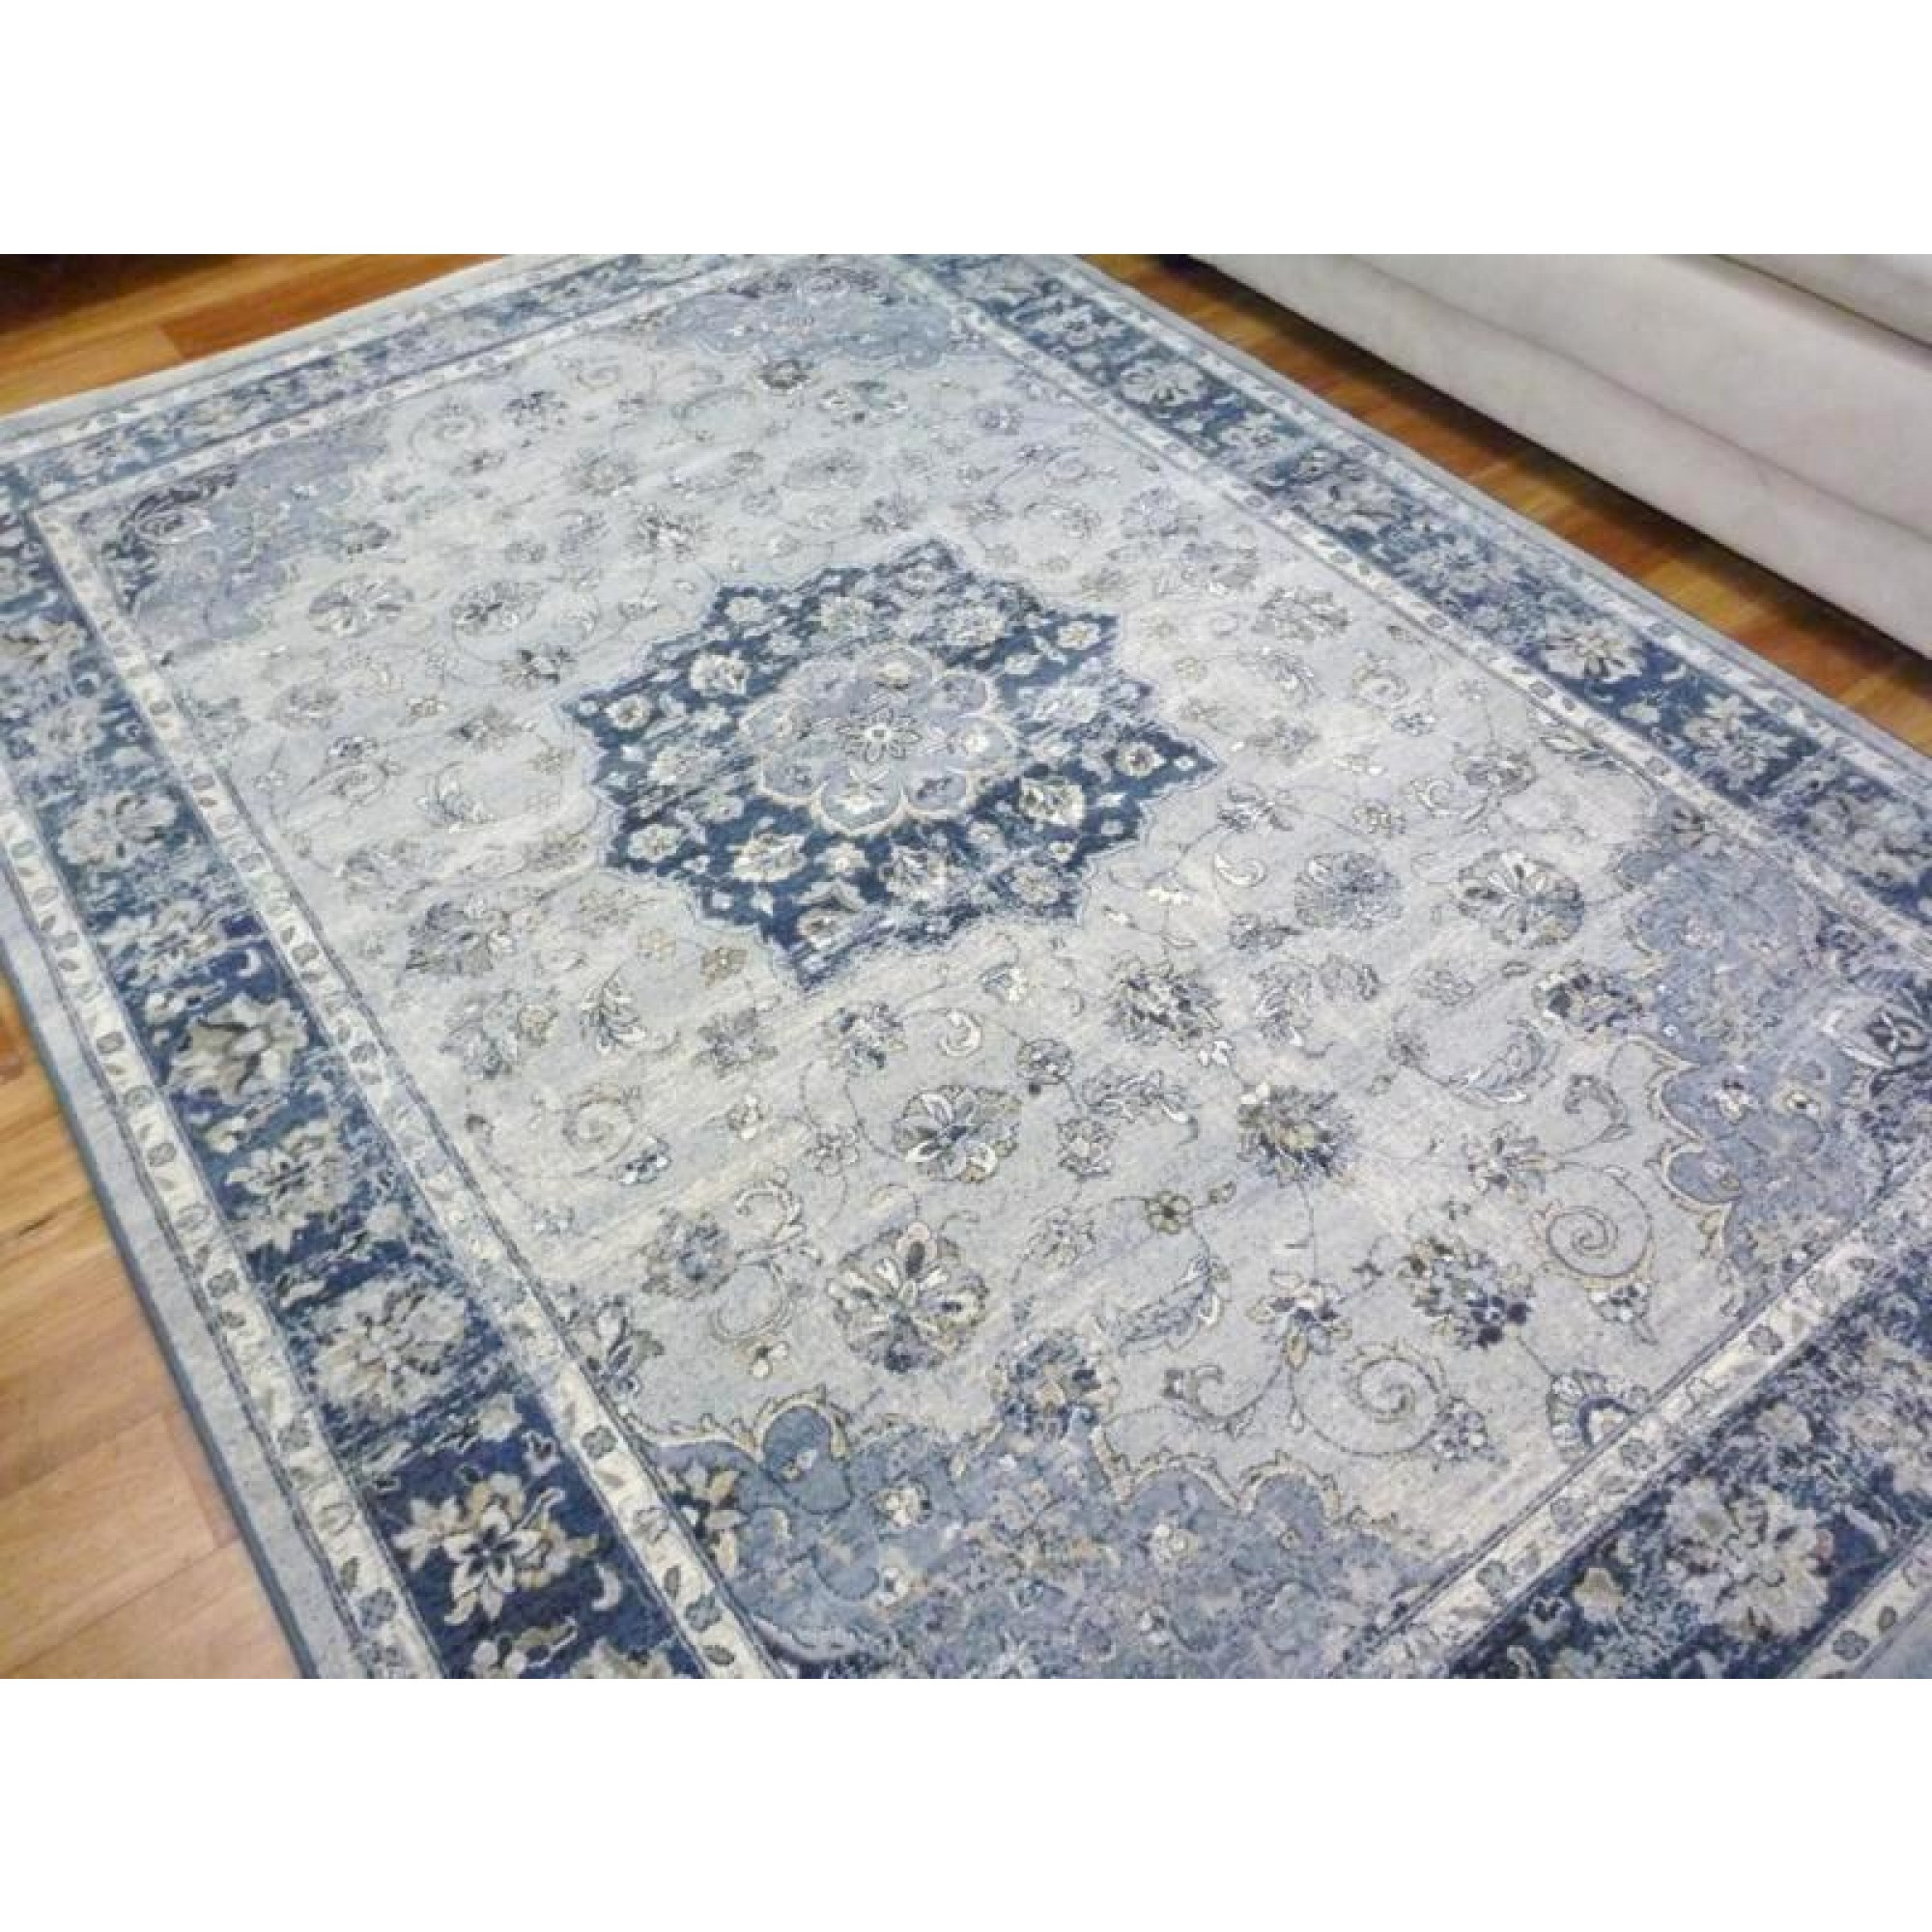 quality rugs soft high quality persian look design floor area rugs elite washed pale FHXENAT